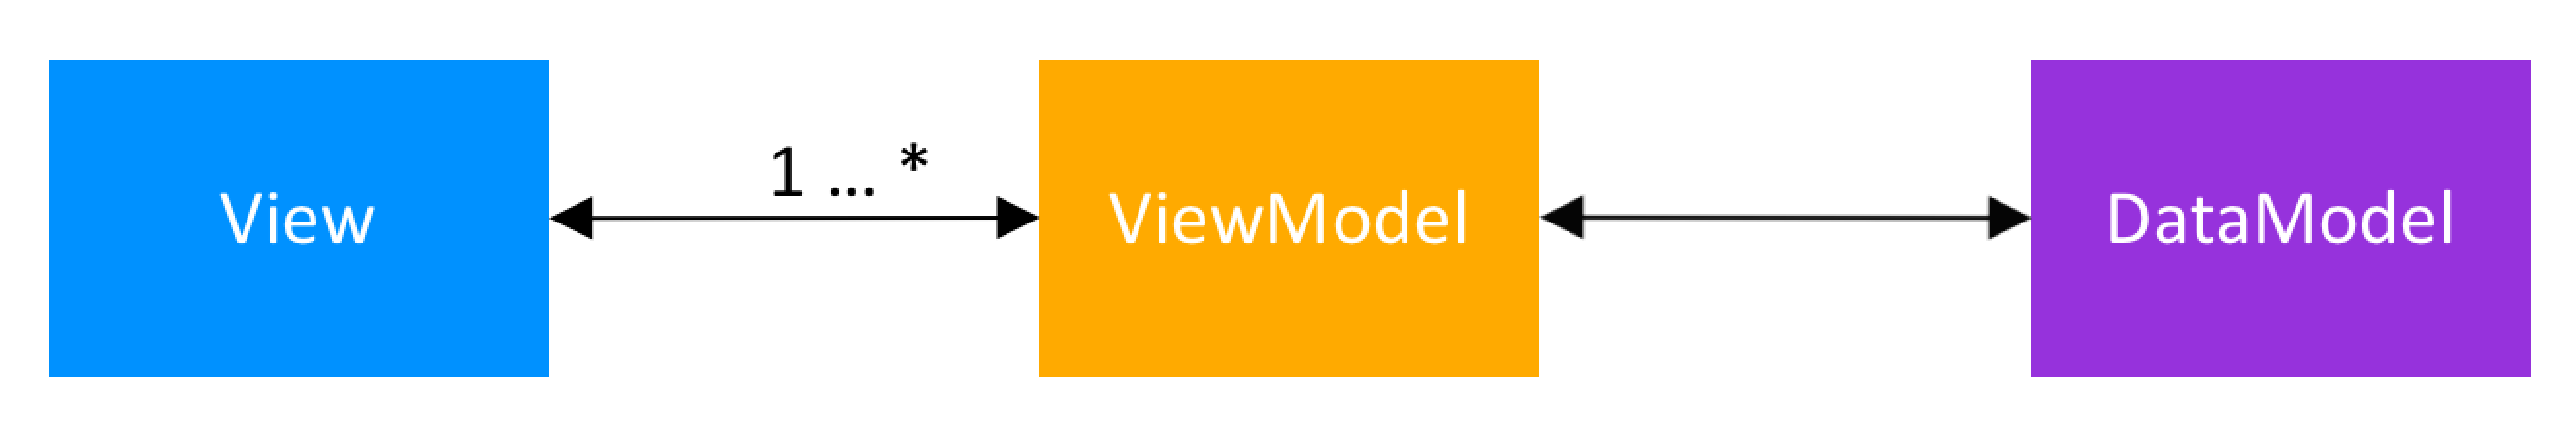 Model-View-ViewModel Architecture